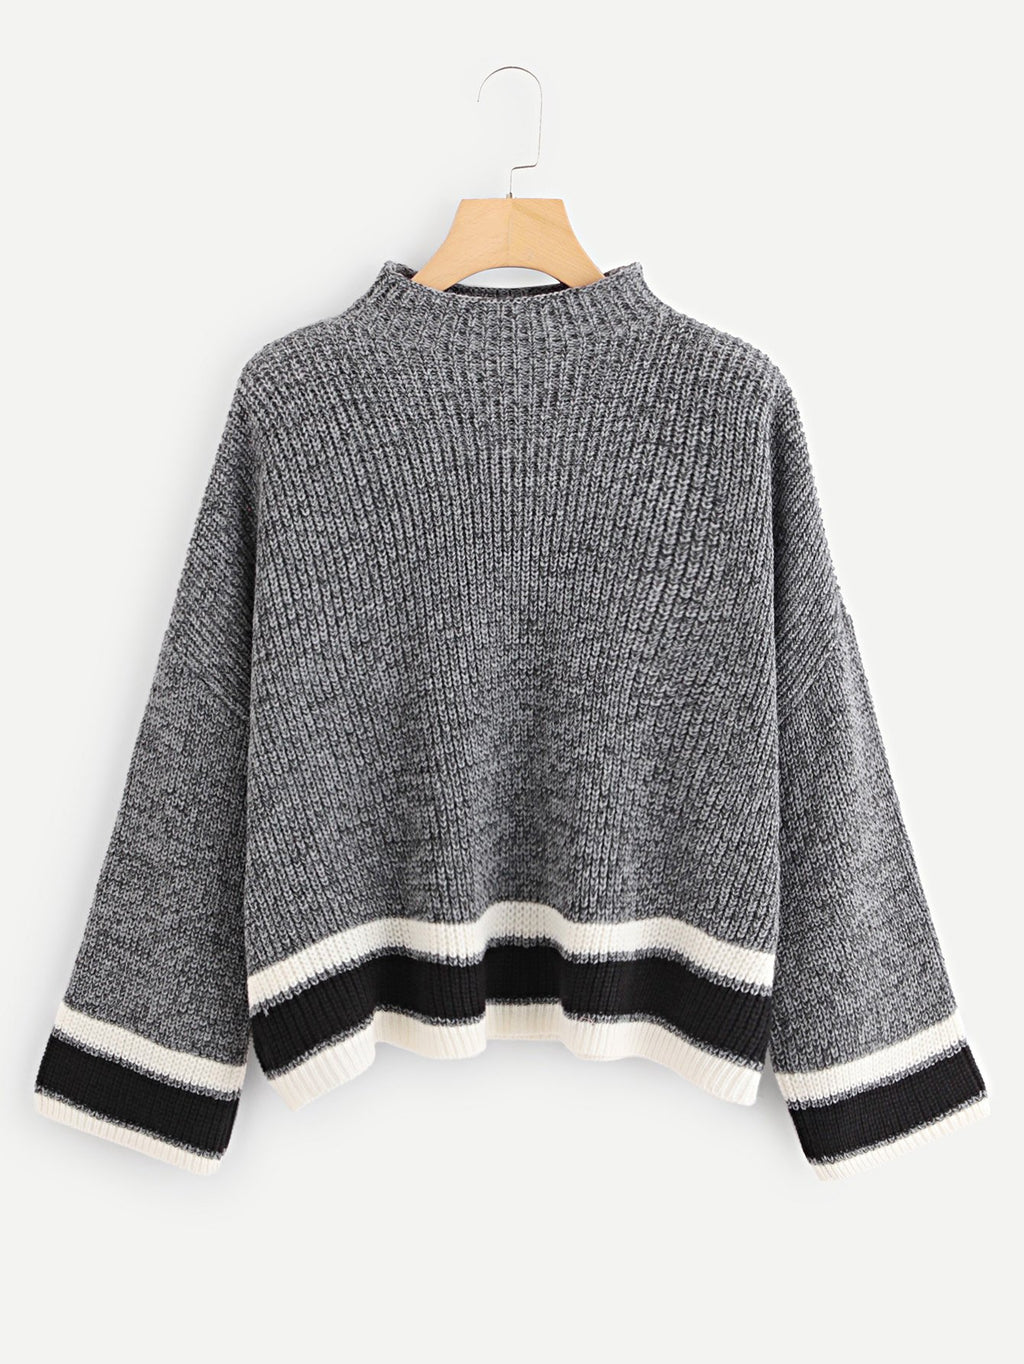 Plus Mock Neck Striped Trim Sweater-Sunshine's Boutique & Gifts